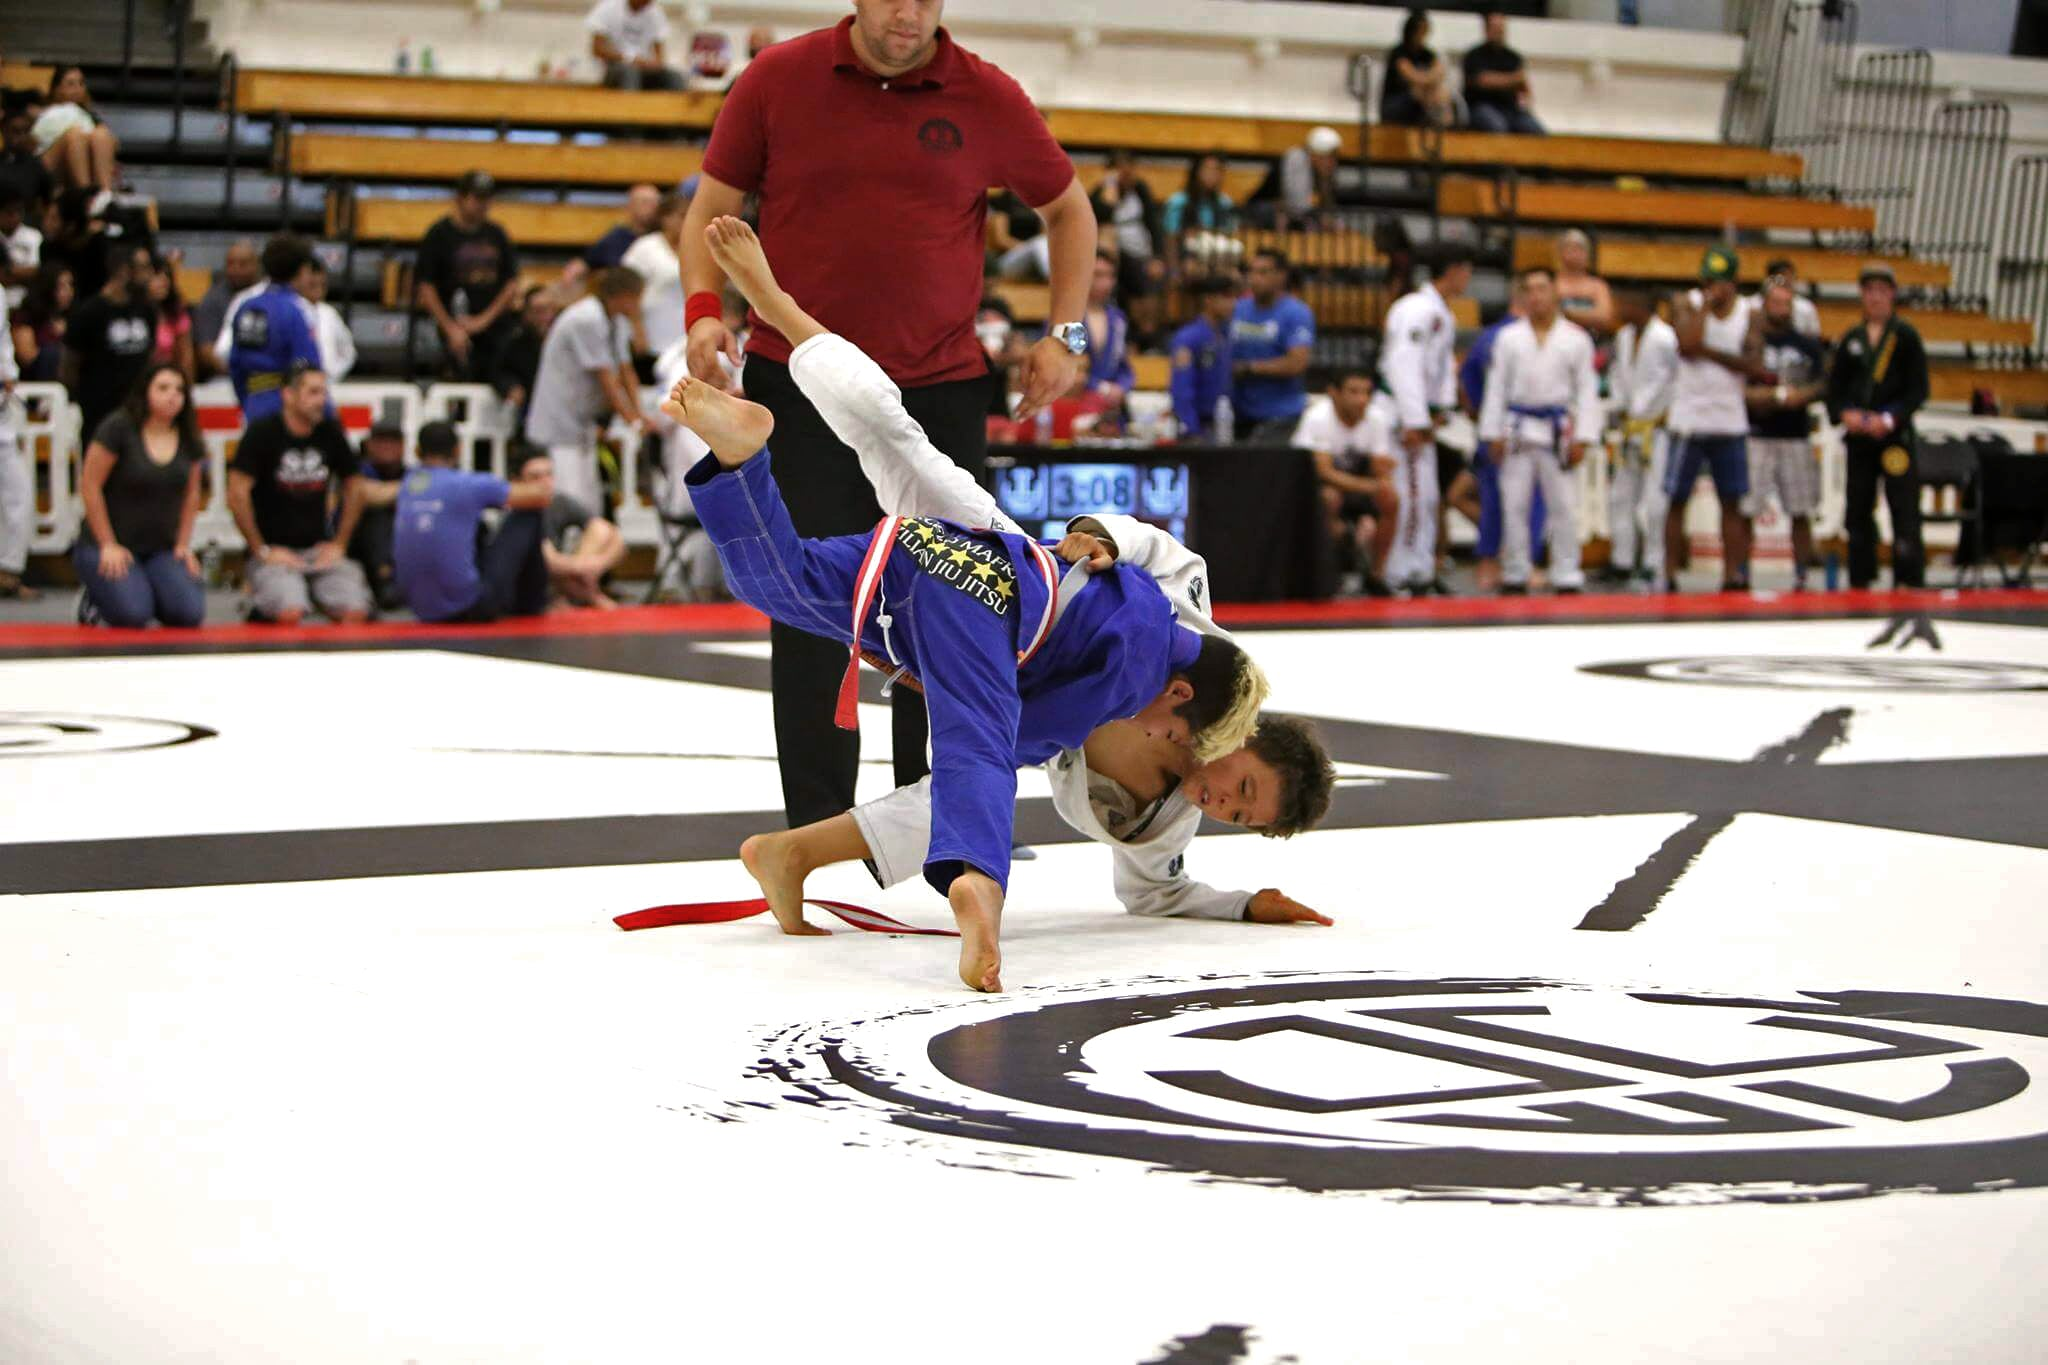 Elite Sports Team Elite Bjj Fighter Gabriel Garcia (Martelo)  Image16